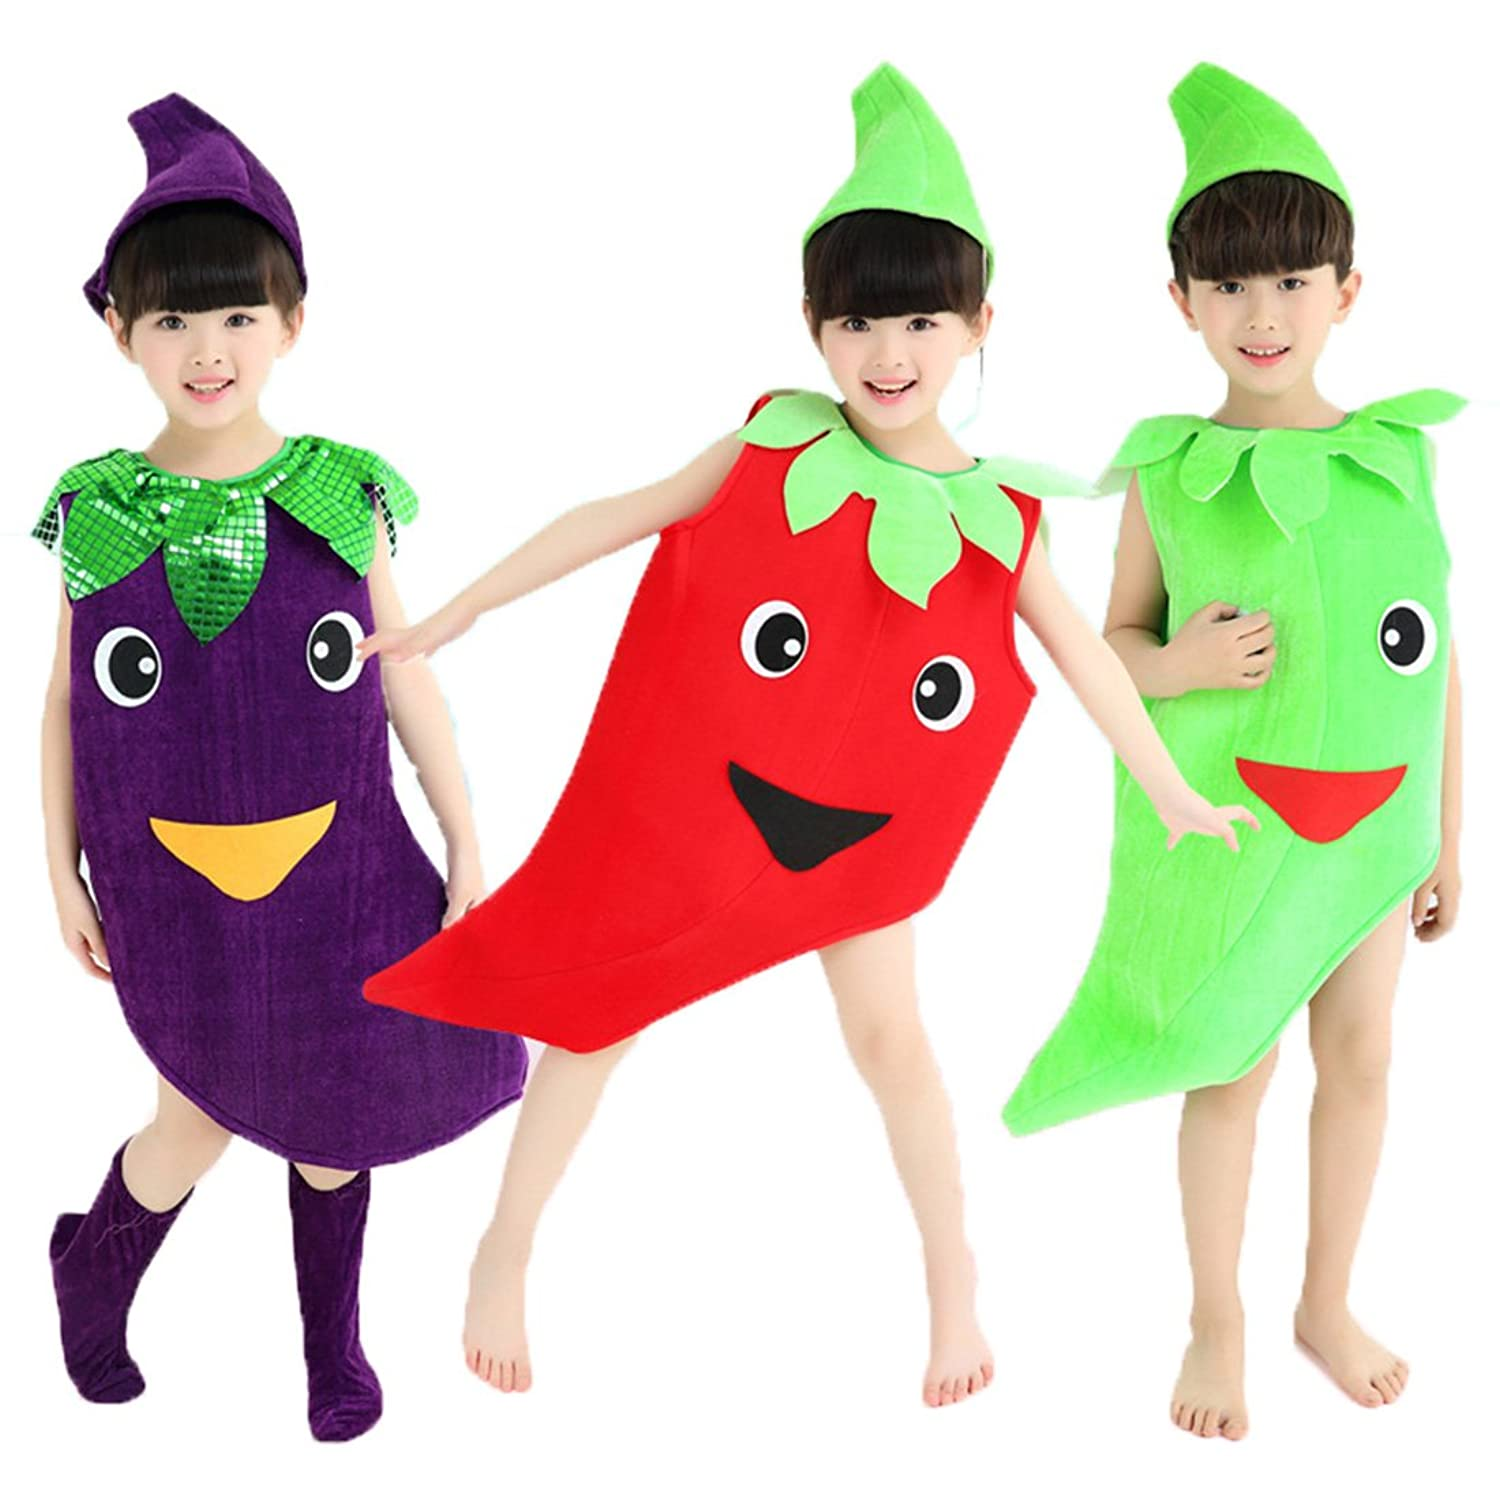 amazoncom halloween costumes childrenadult vegetables clothes pepper eggplant clothes clothing - Clothes Halloween